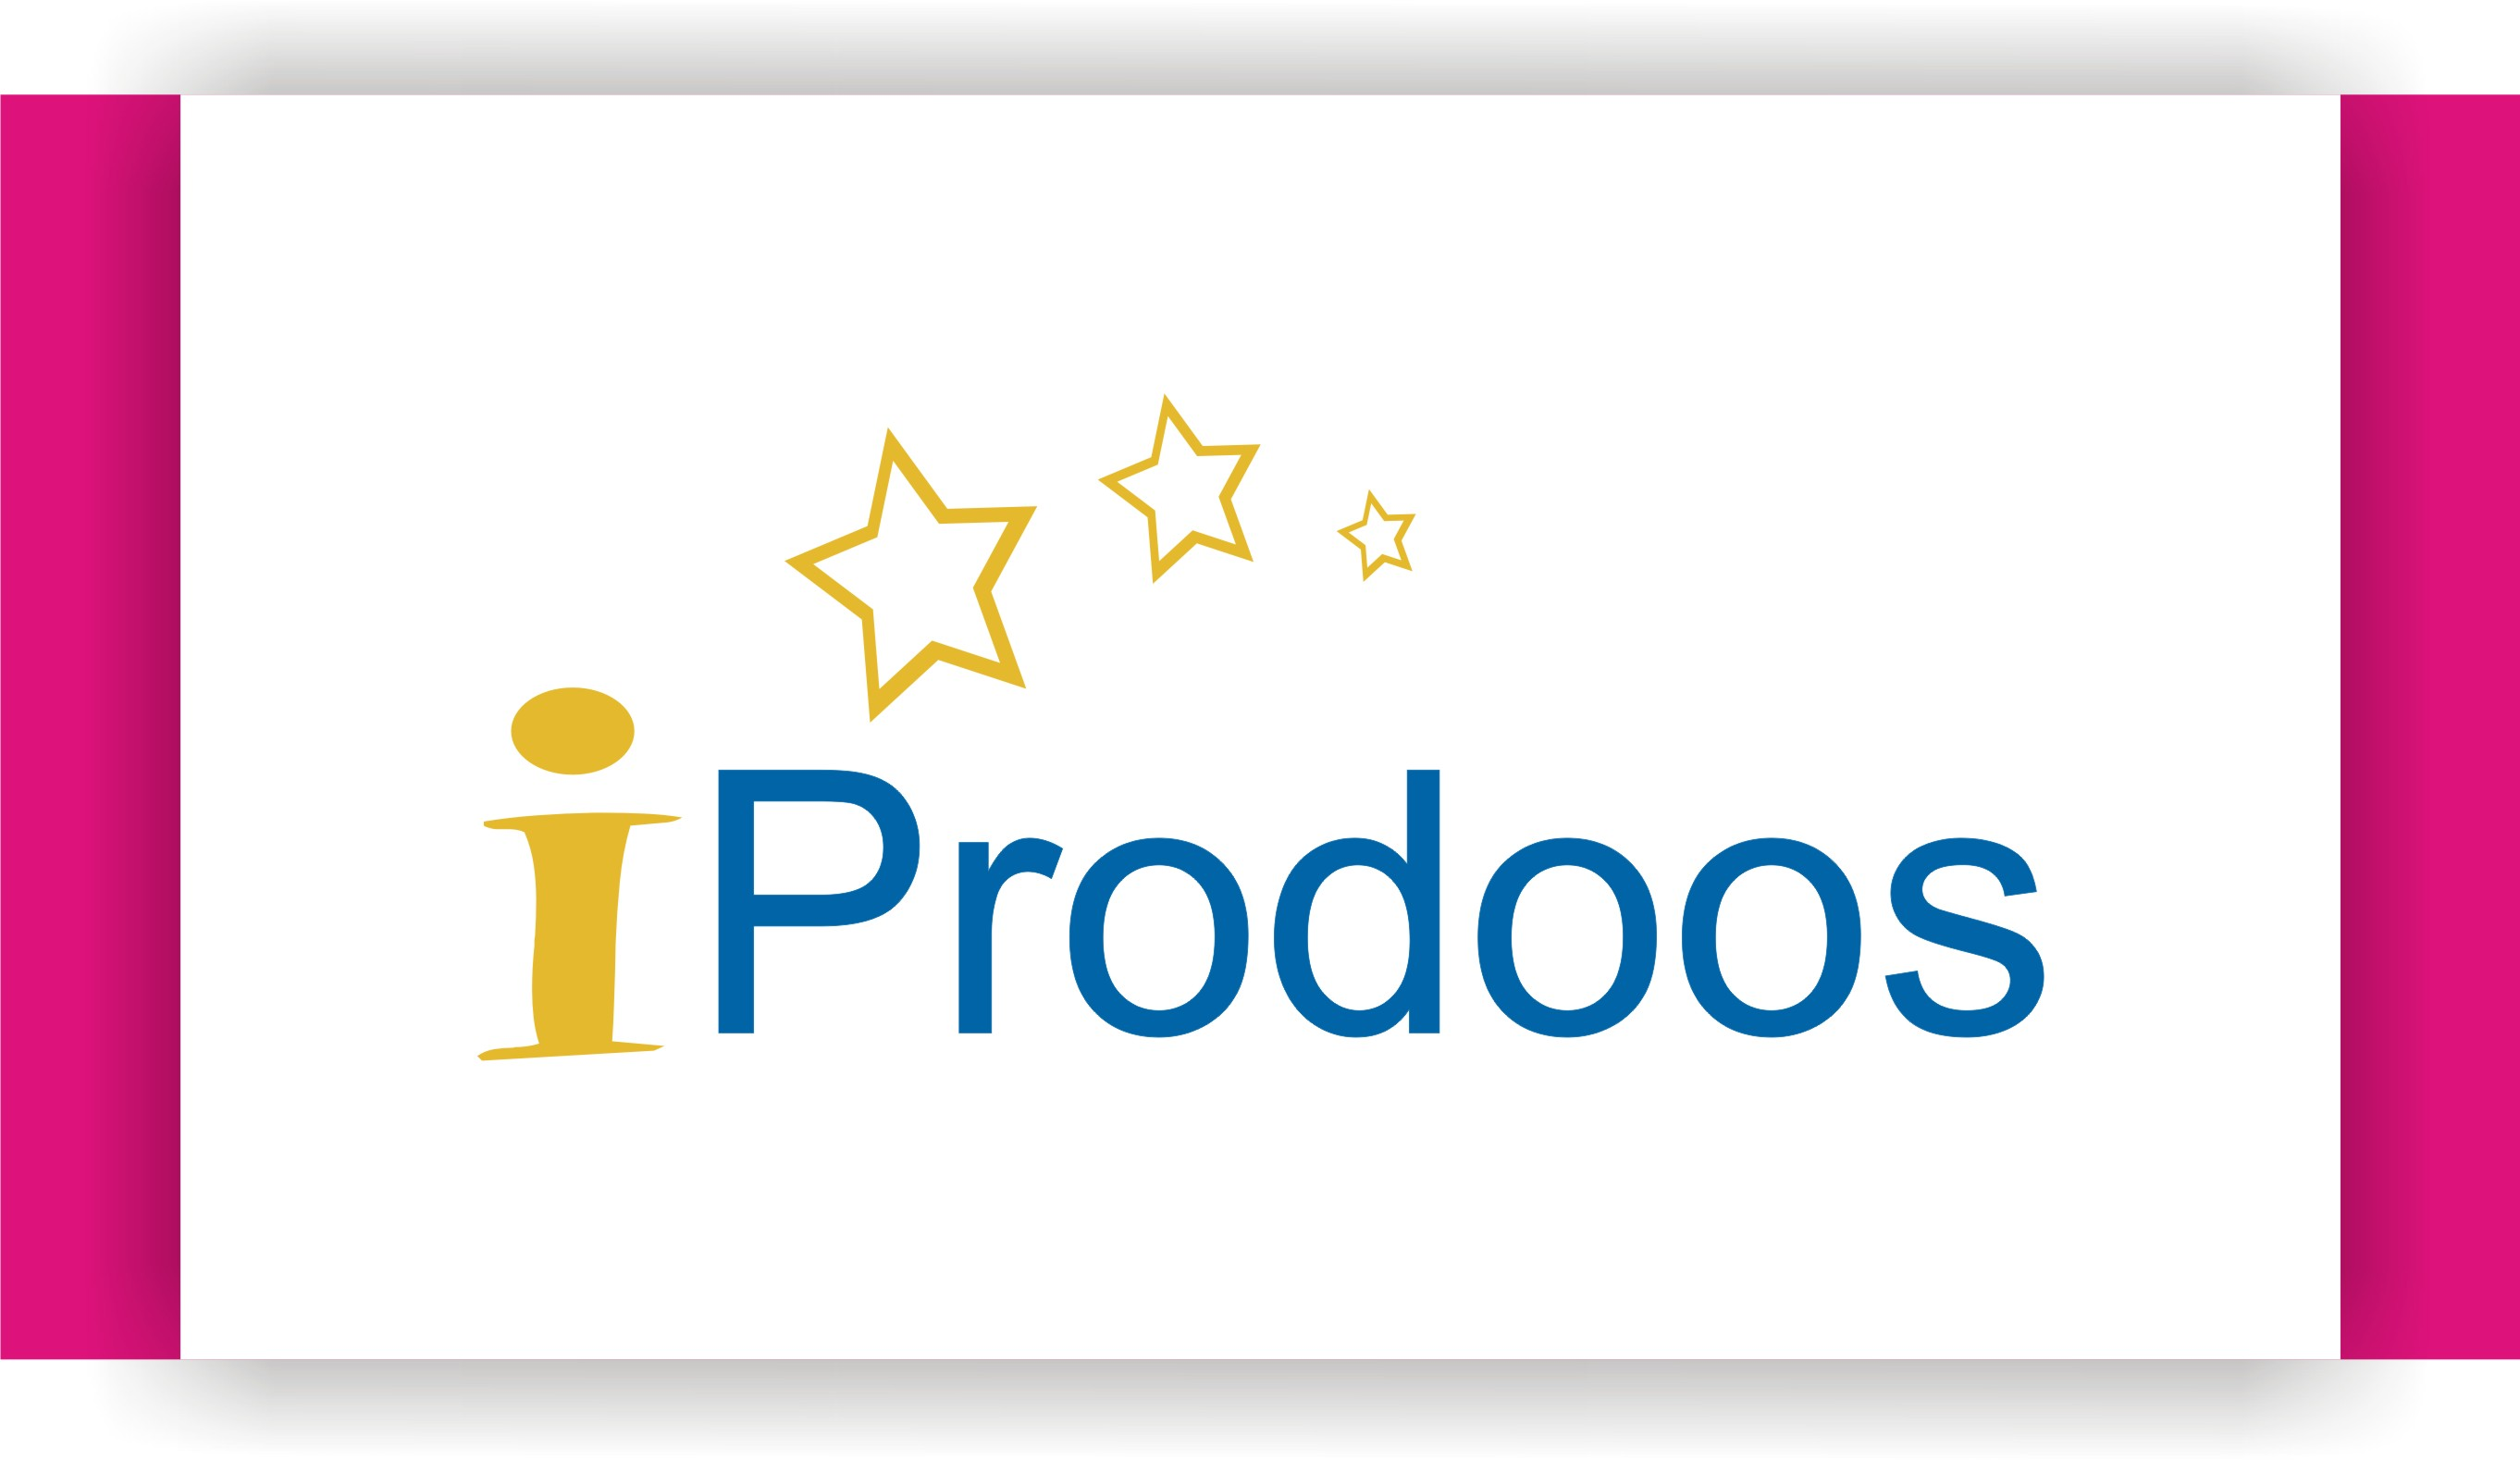 Logo Design by Shailender Kumar - Entry No. 70 in the Logo Design Contest New Logo Design for iProdoos.